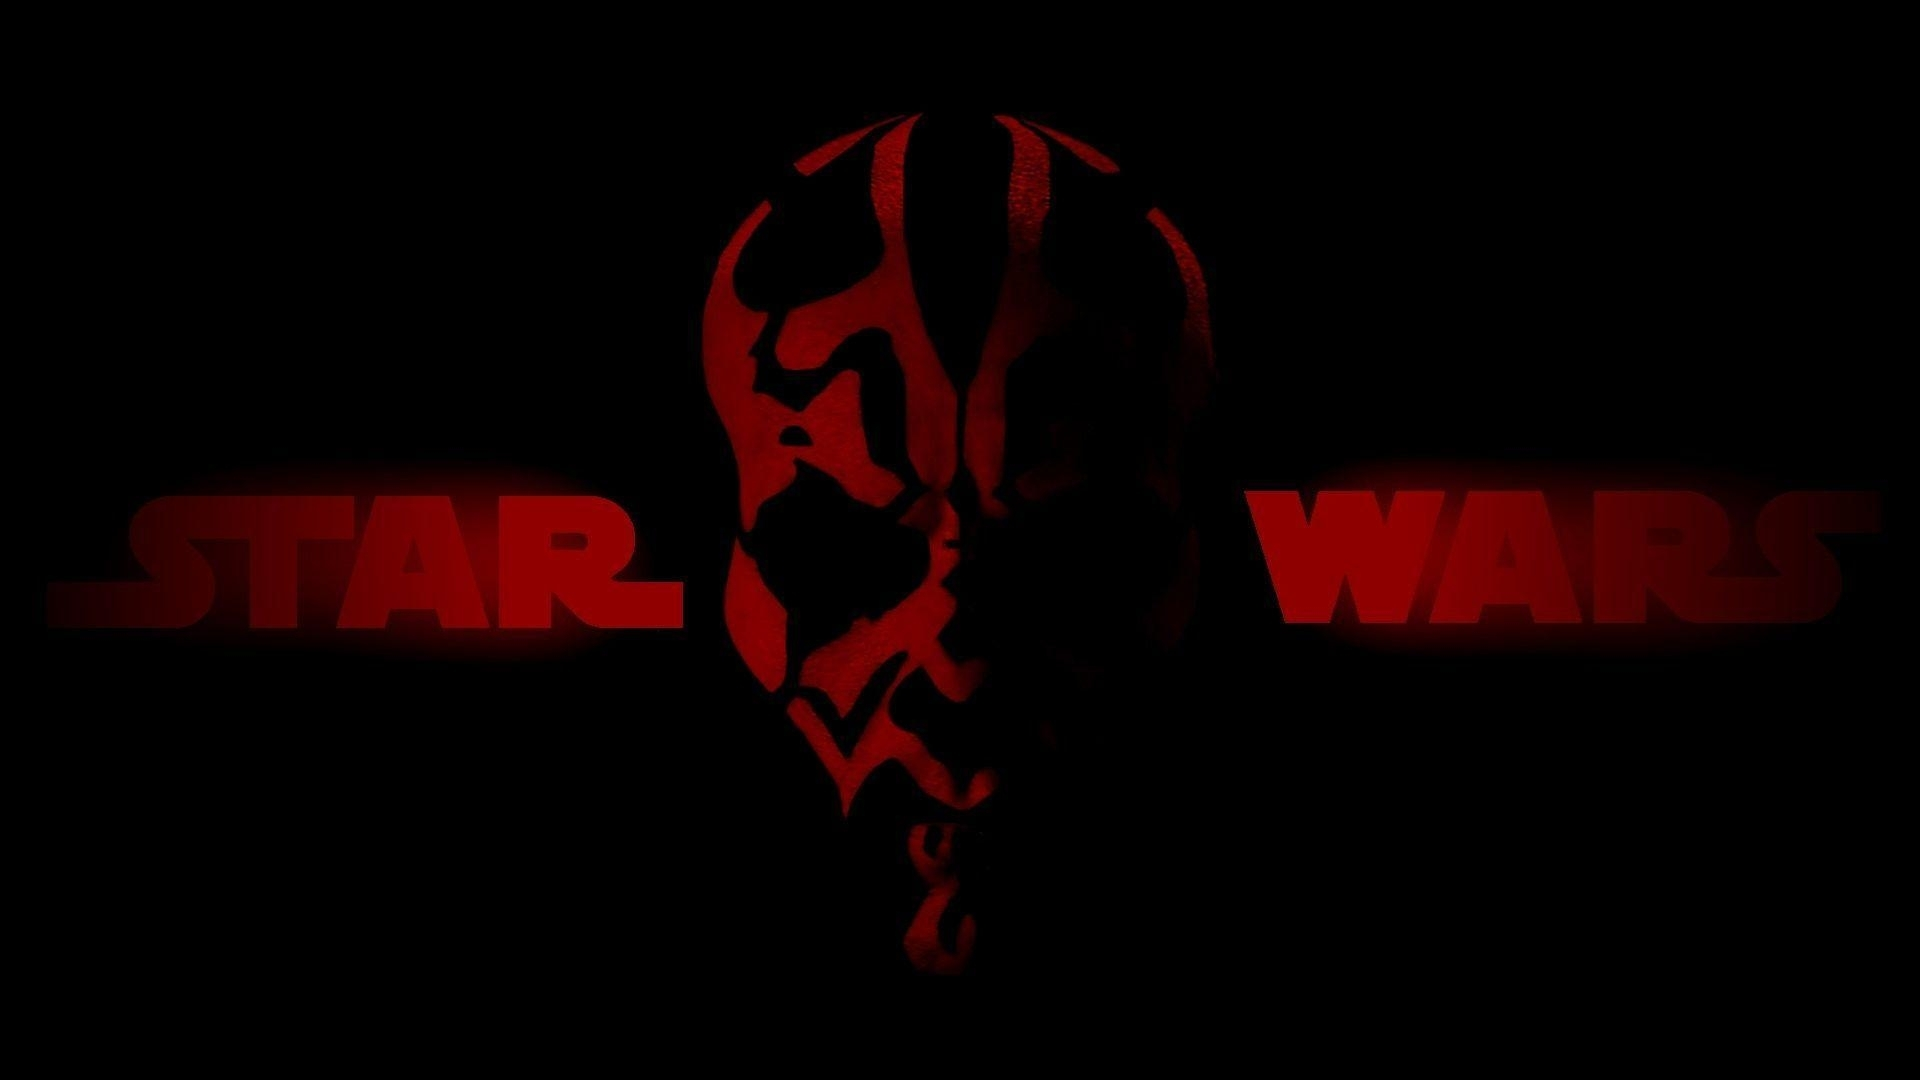 darth maul wallpapers - wallpaper cave